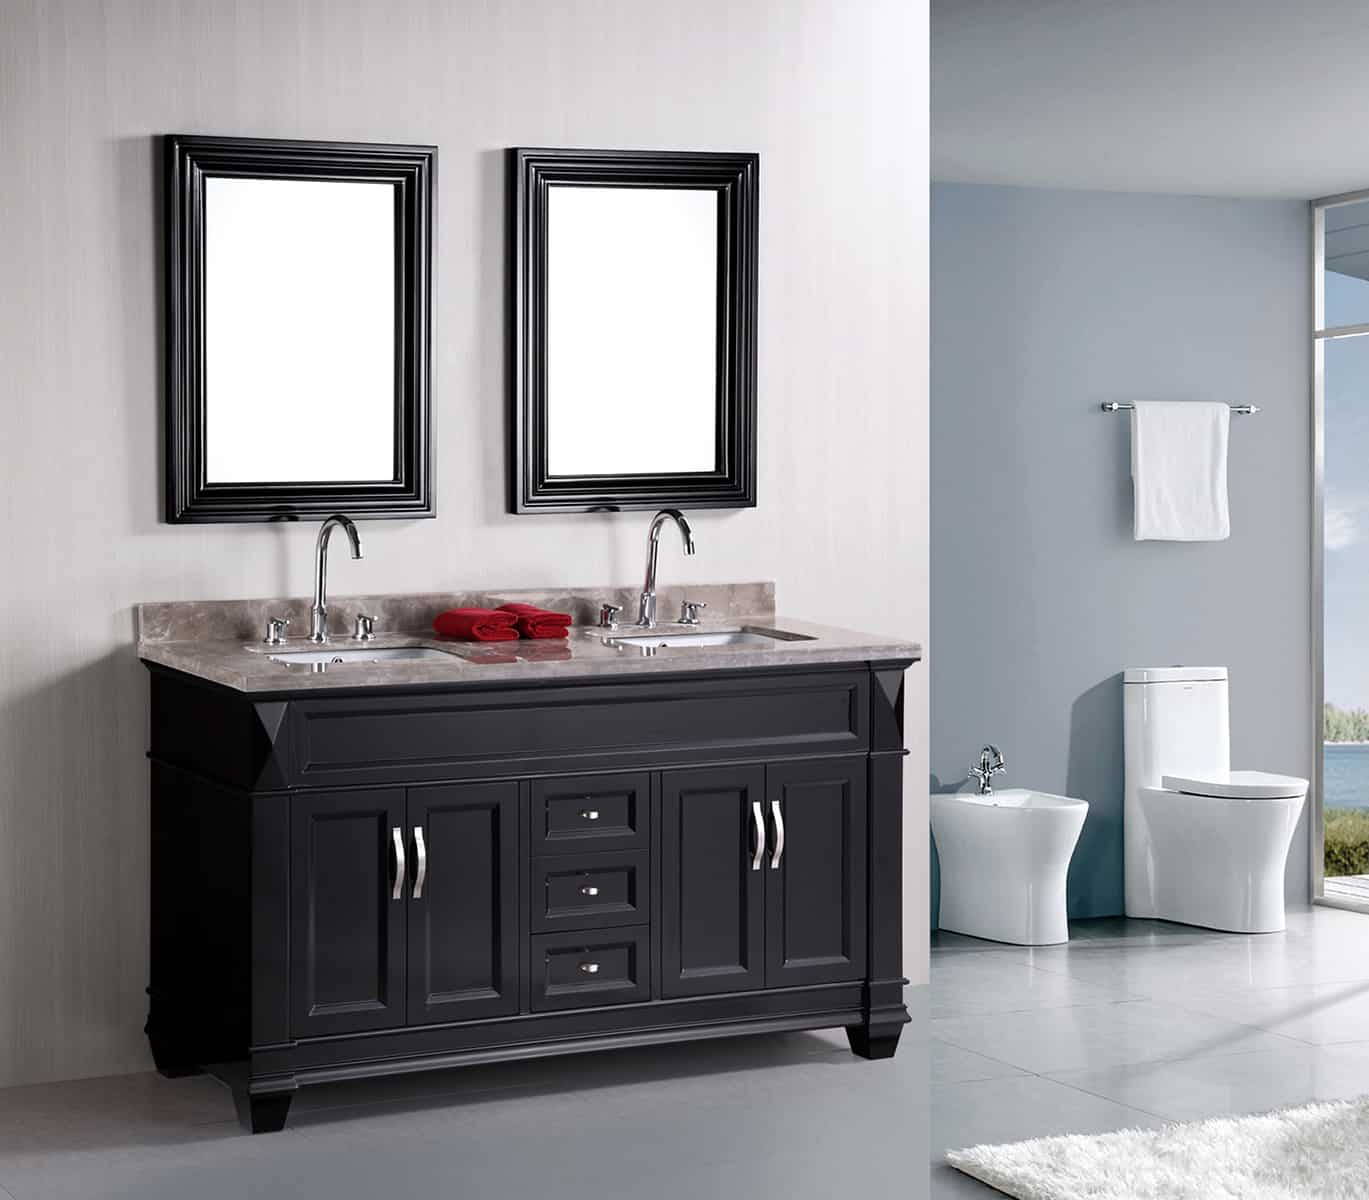 Hudson 60 double sink raj kitchen and bath for Bathroom designs lebanon